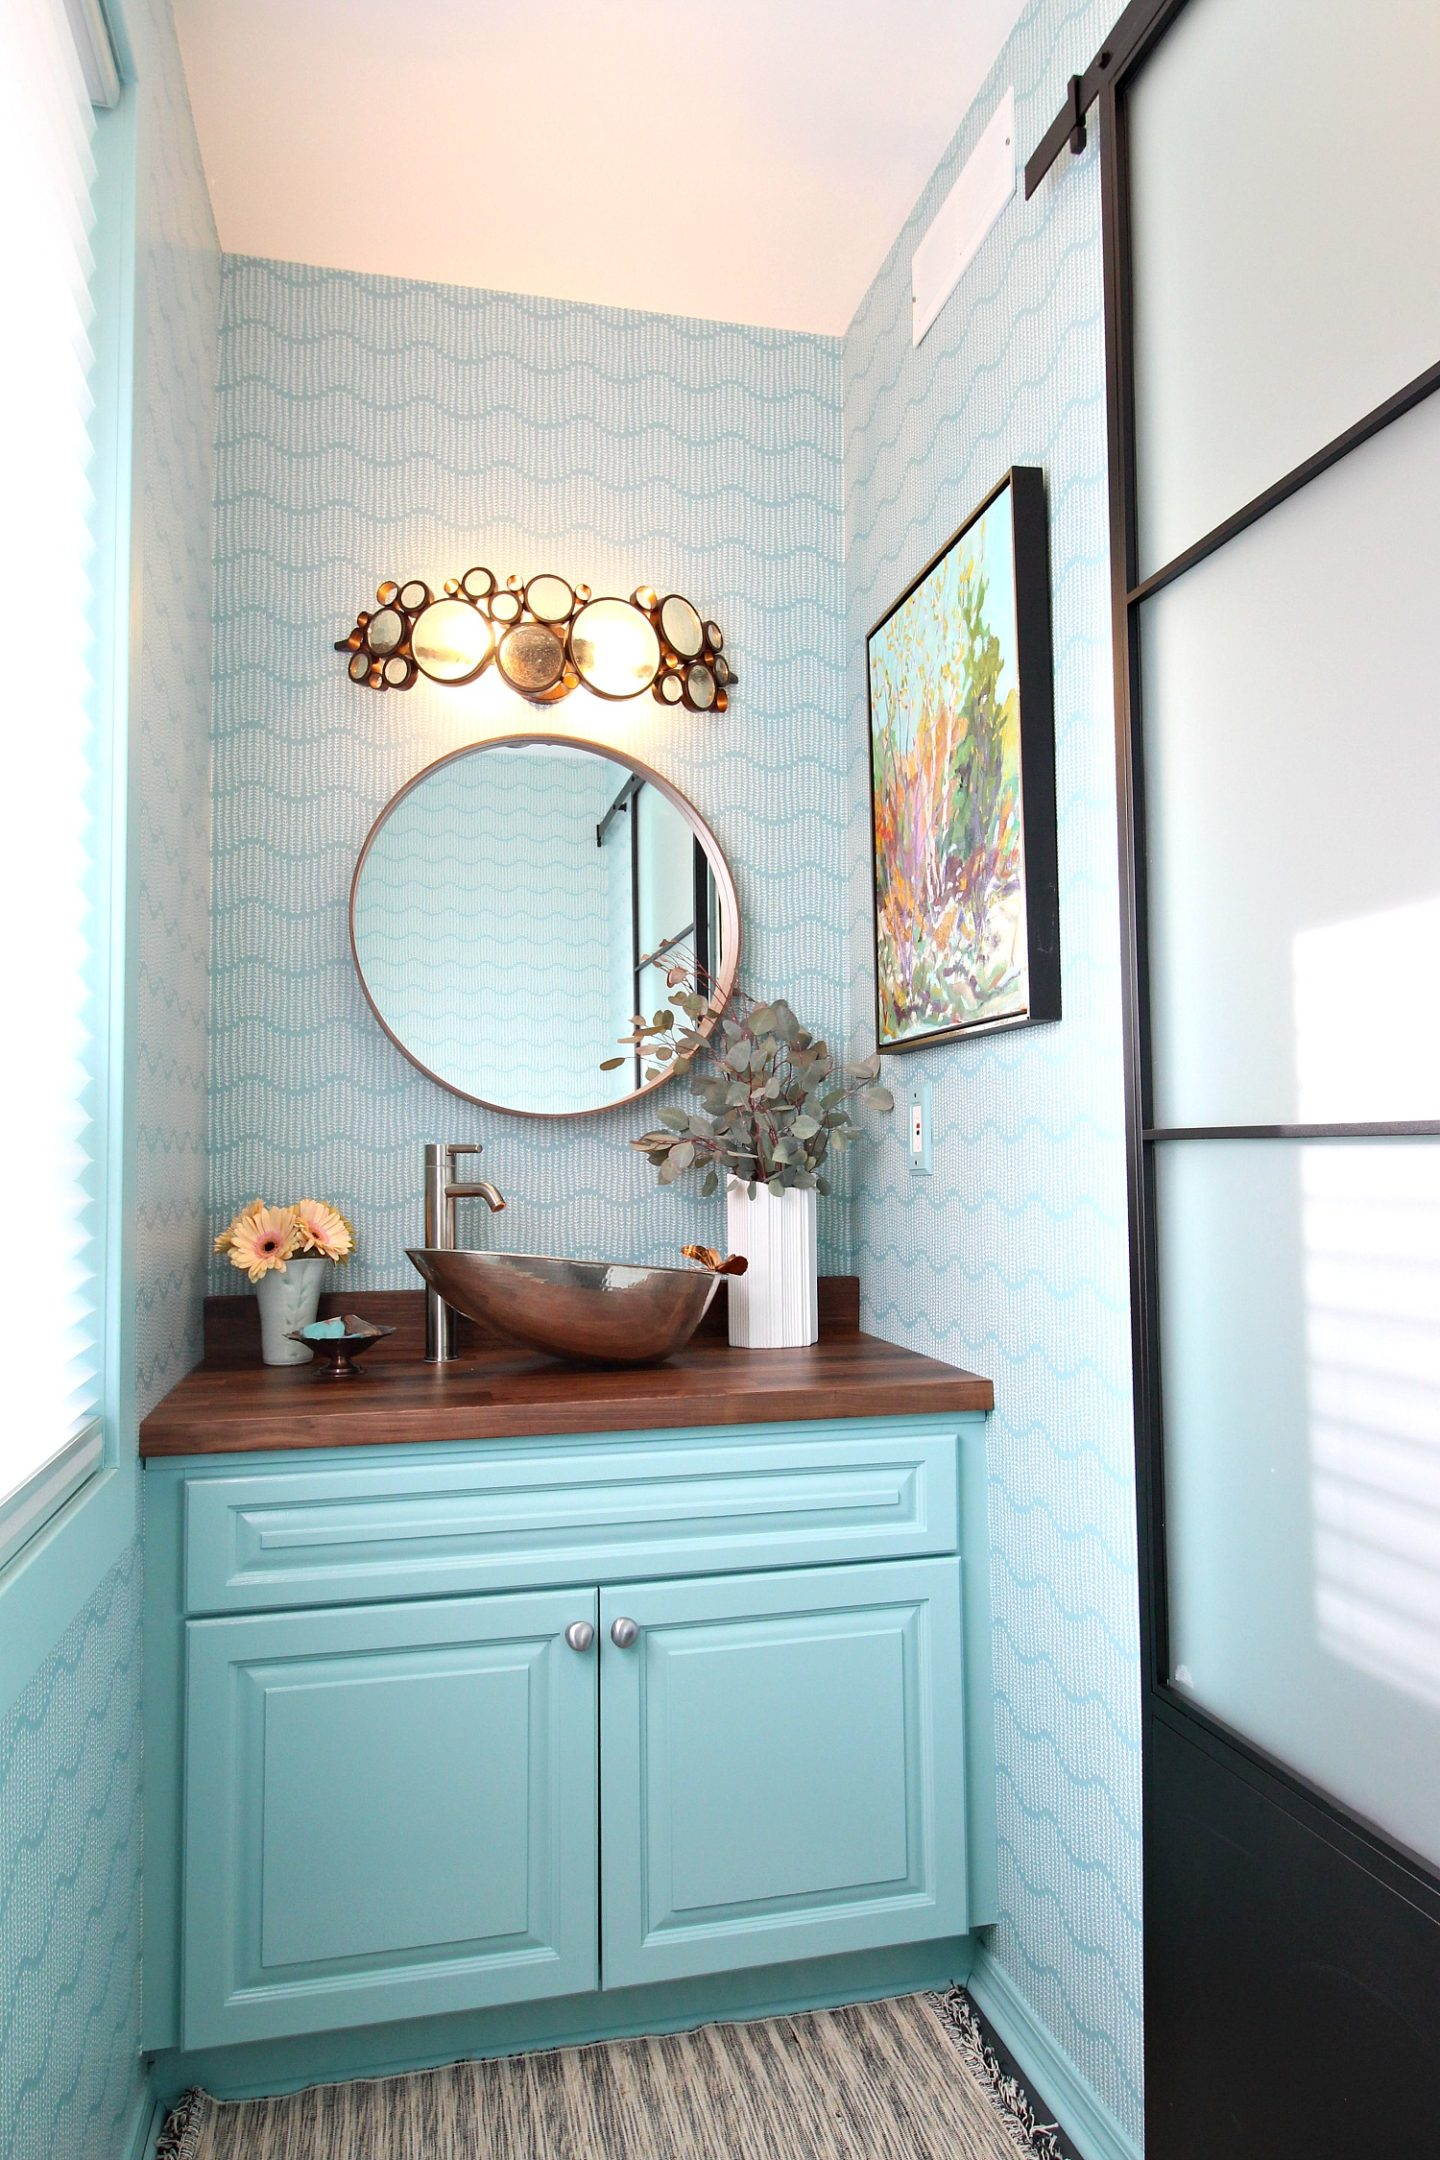 Turquoise Bathroom Makeover with Turquoise Patterned Wallpaper, Matching Turquoise Vanity and Mixed Metals